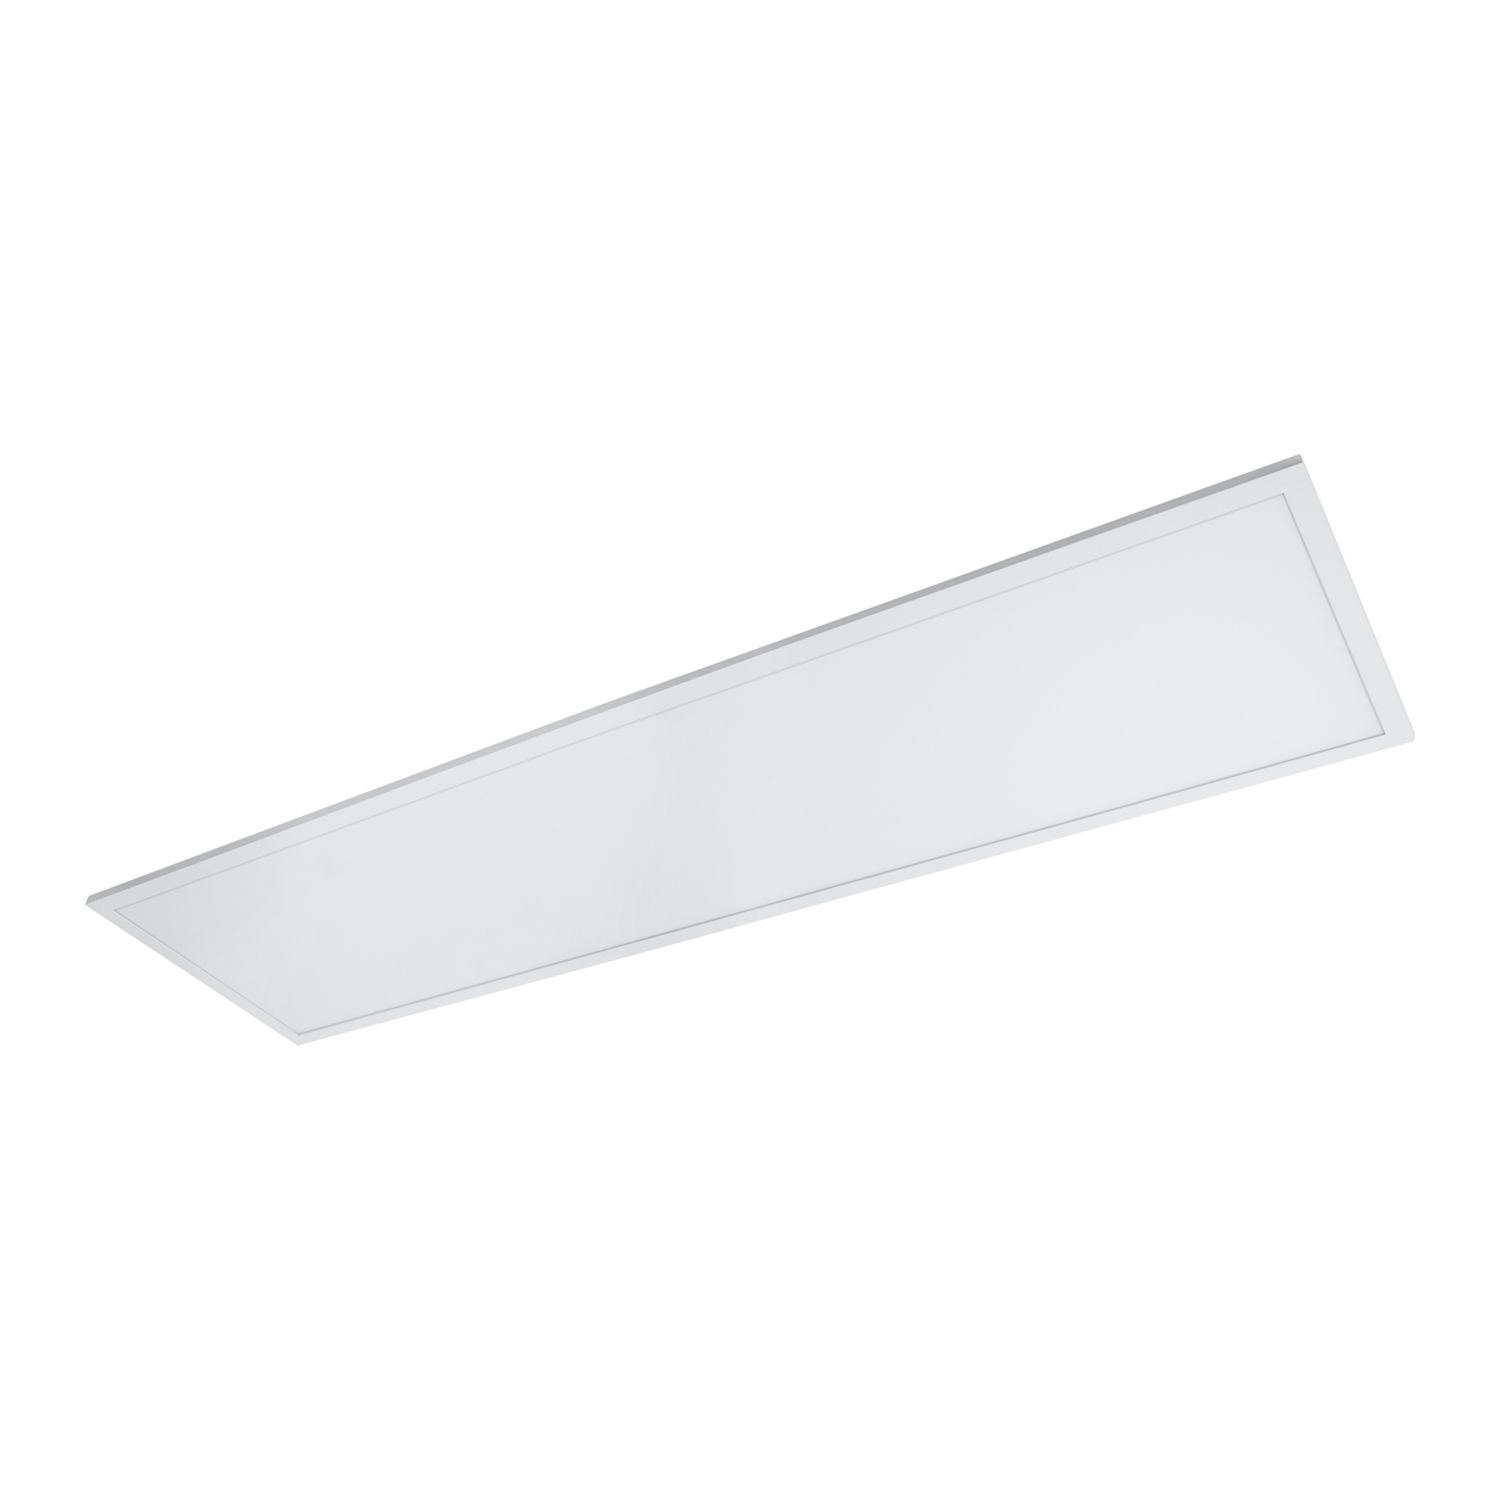 Ledvance LED Panel 30x120cm 3000K 40K 230V | Warm White - Replaces 2x36W